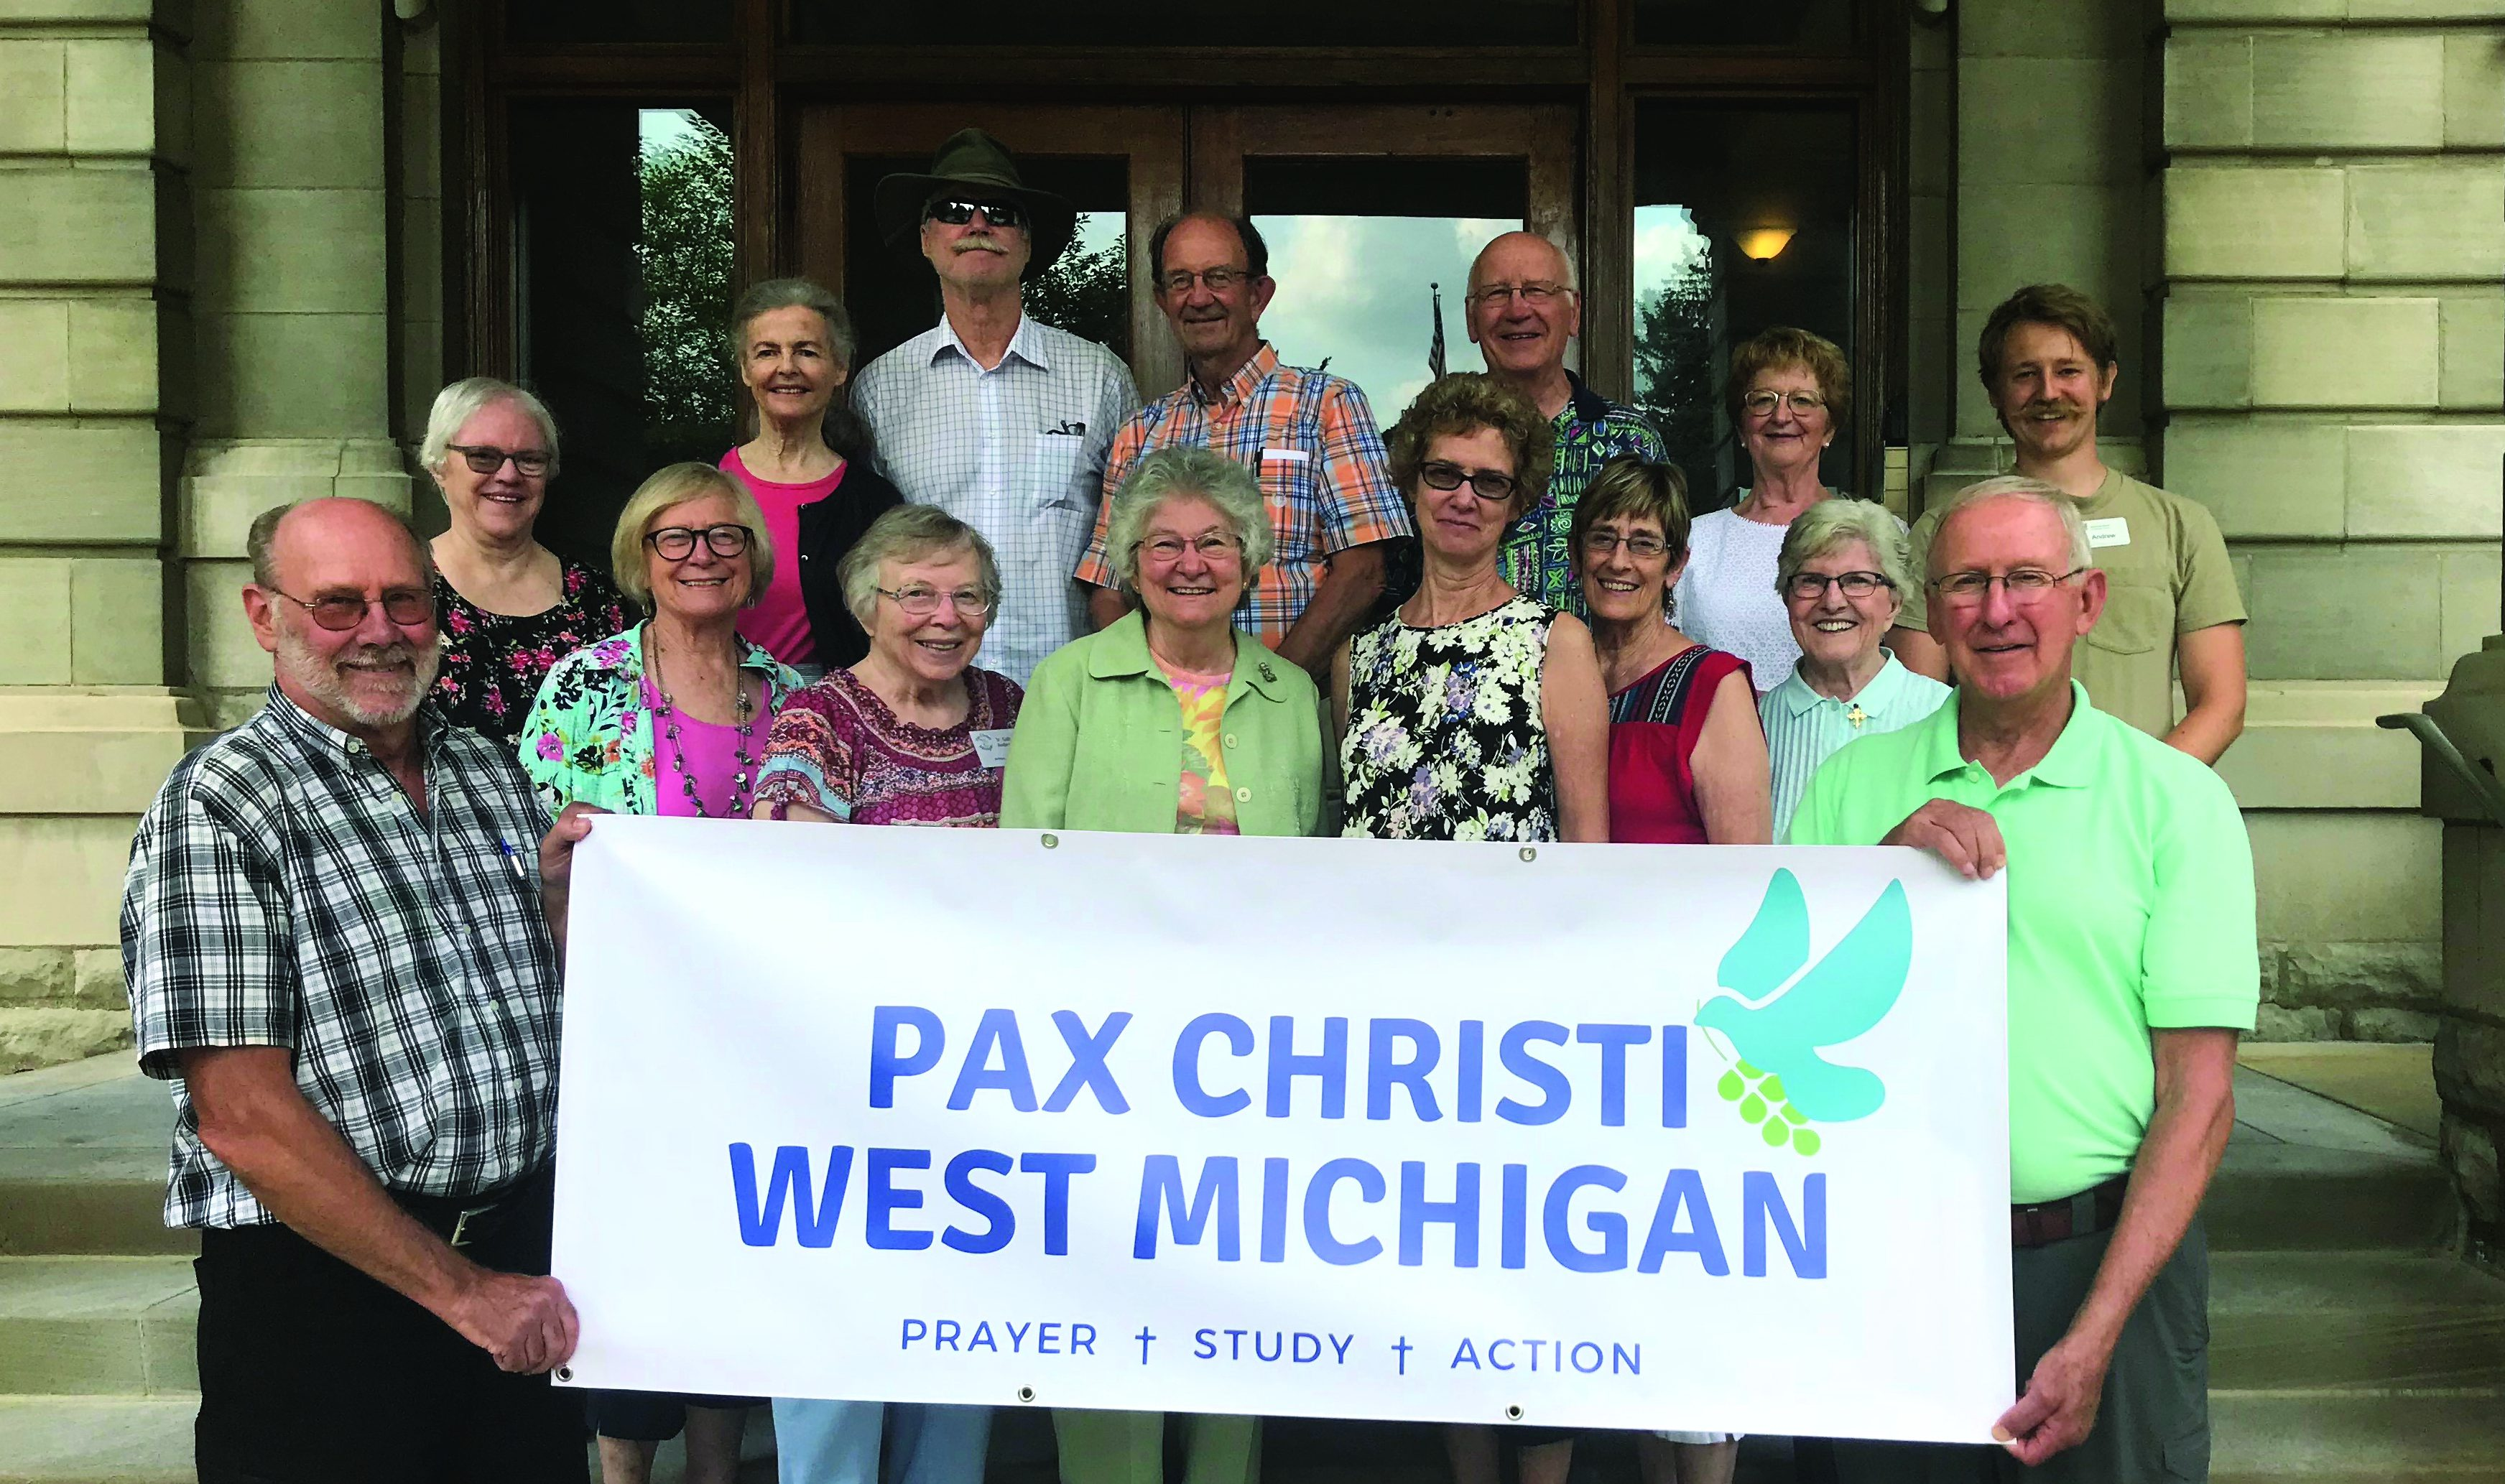 Pax Christi West Michigan at Marywood